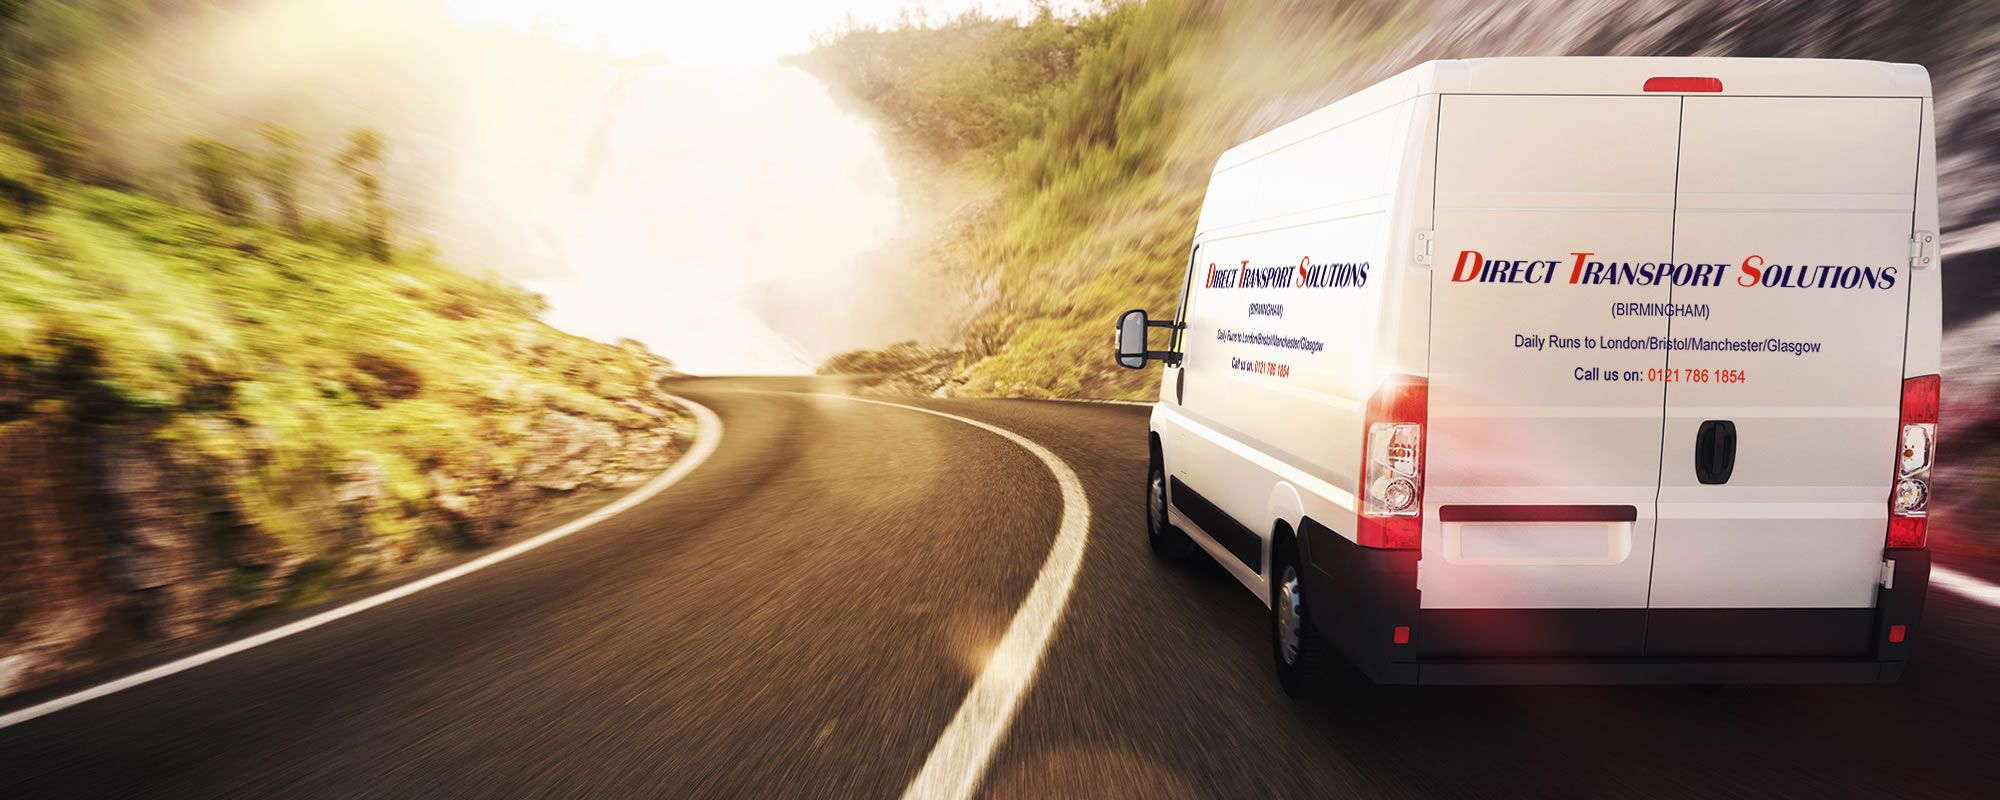 SAME DAY & NEXT DAY COURIERS IN BIRMINGHAM, WEST MIDLANDS